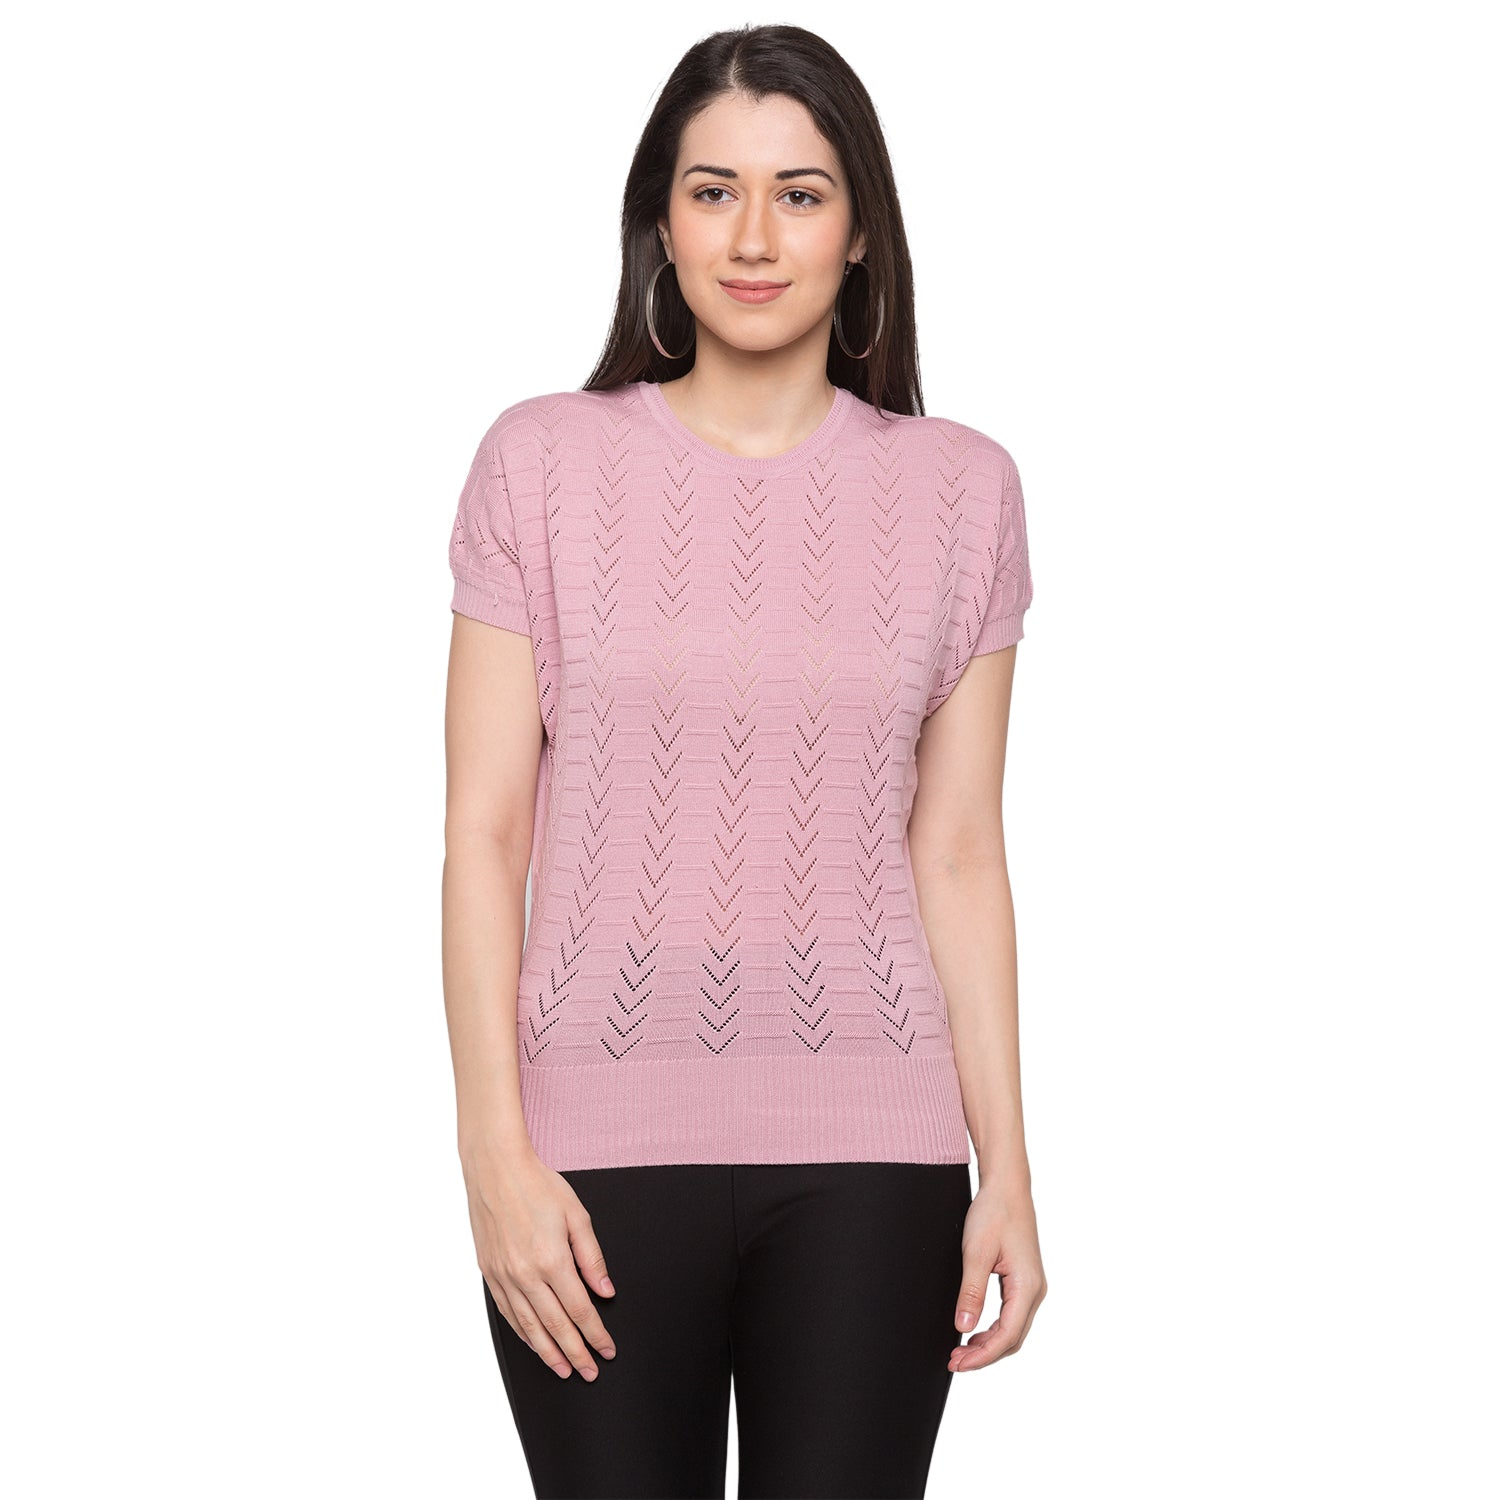 Globus Pink Knitted Top1